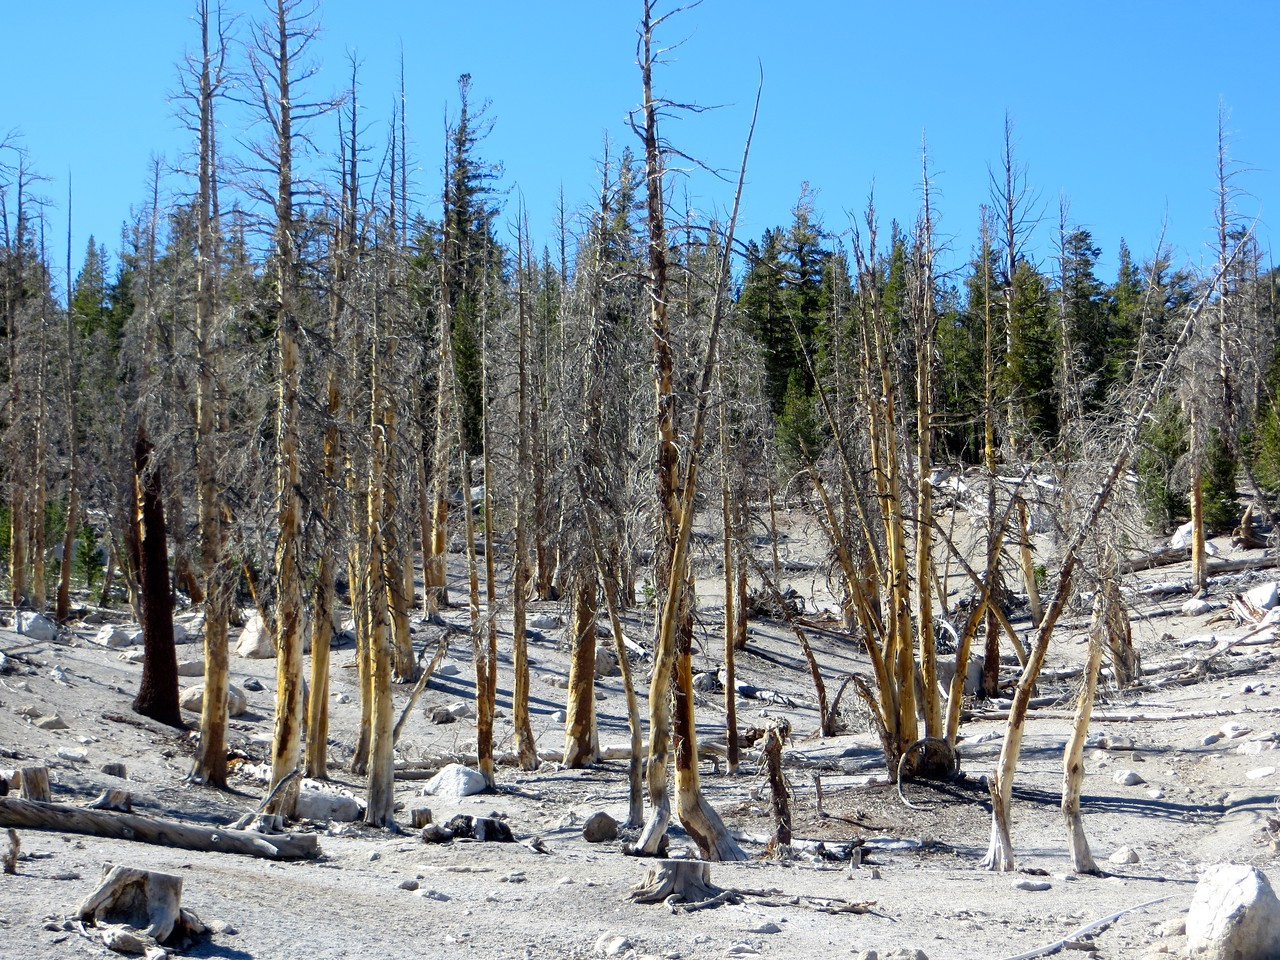 Trees killed by CO2